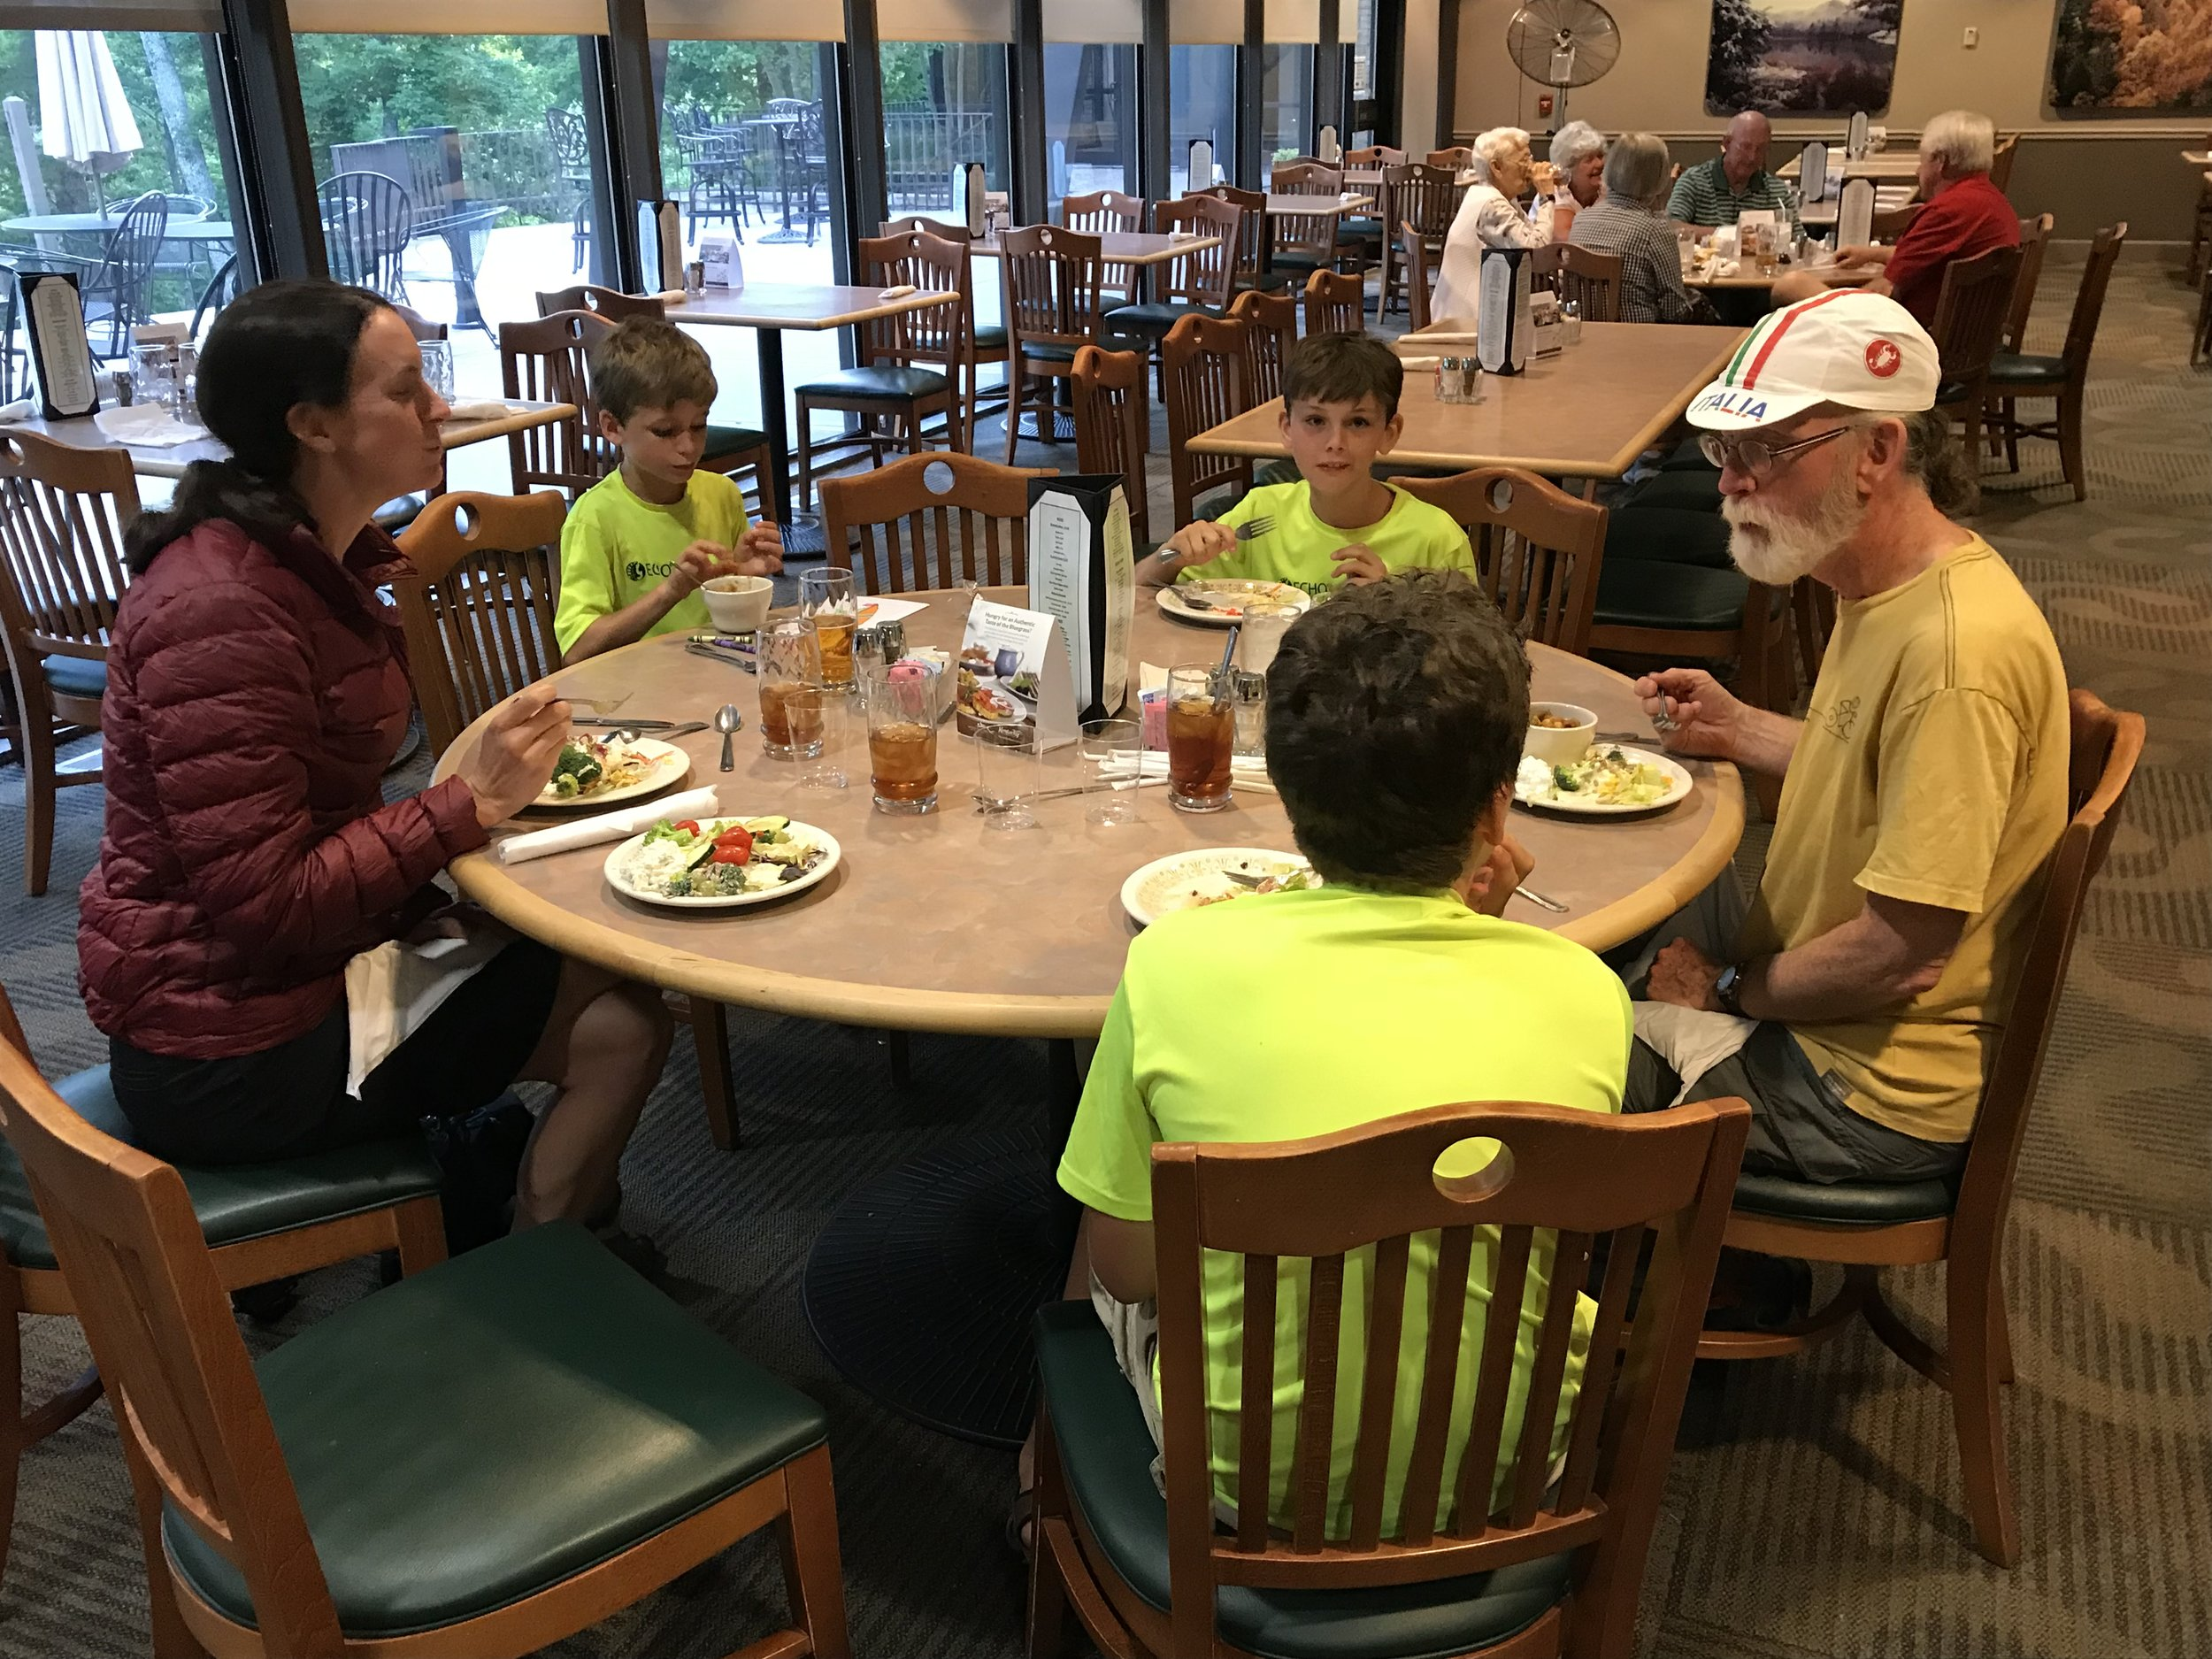 Mmm! We were so excited about the all-you-can-eat catfish special at the Rough River State Park lodge, where we ate dinner with our cycling buddy, Robbie. We are so glad that our paths have crossed with him so many times!